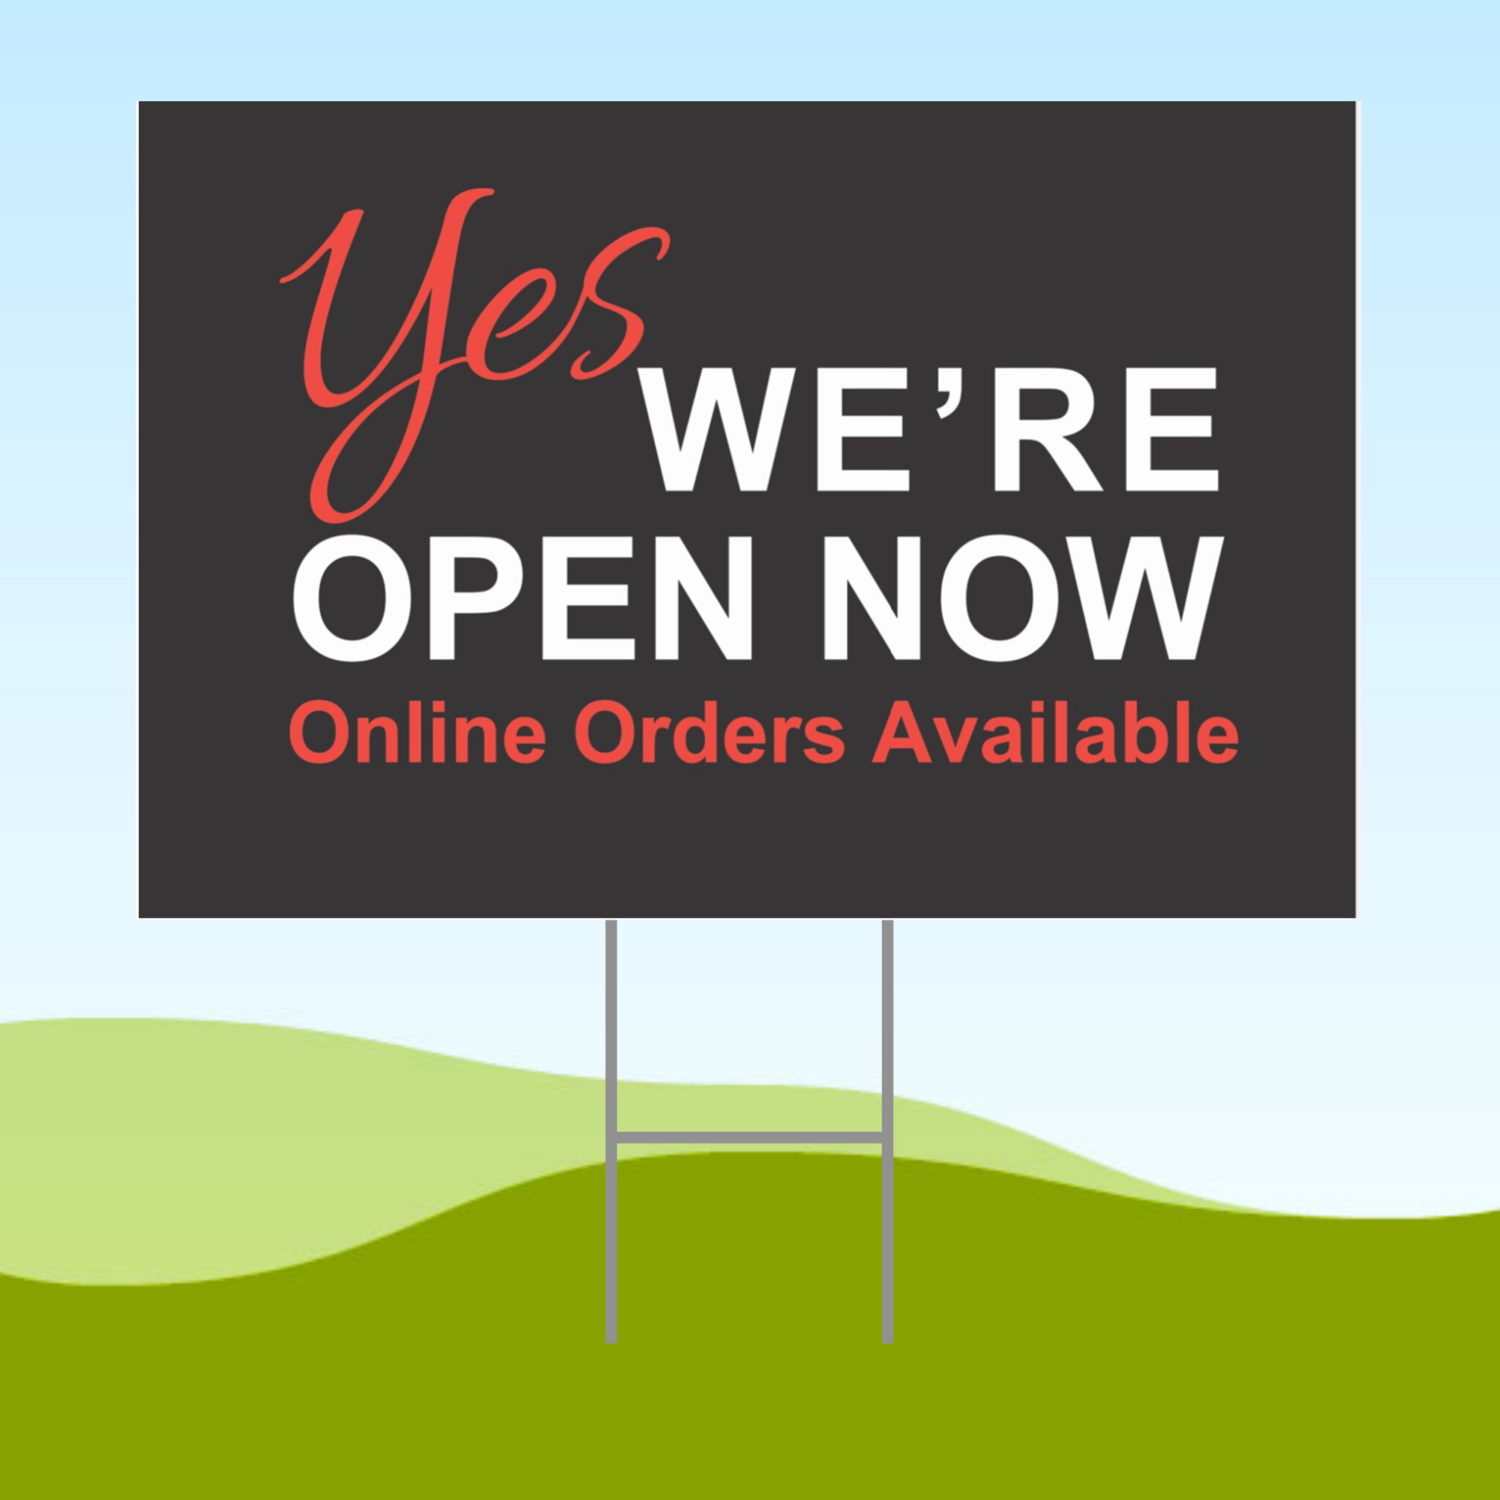 Yes, We're Open Now Black 18x24 Yard Sign WITH STAKE Corrugated Plastic Bandit